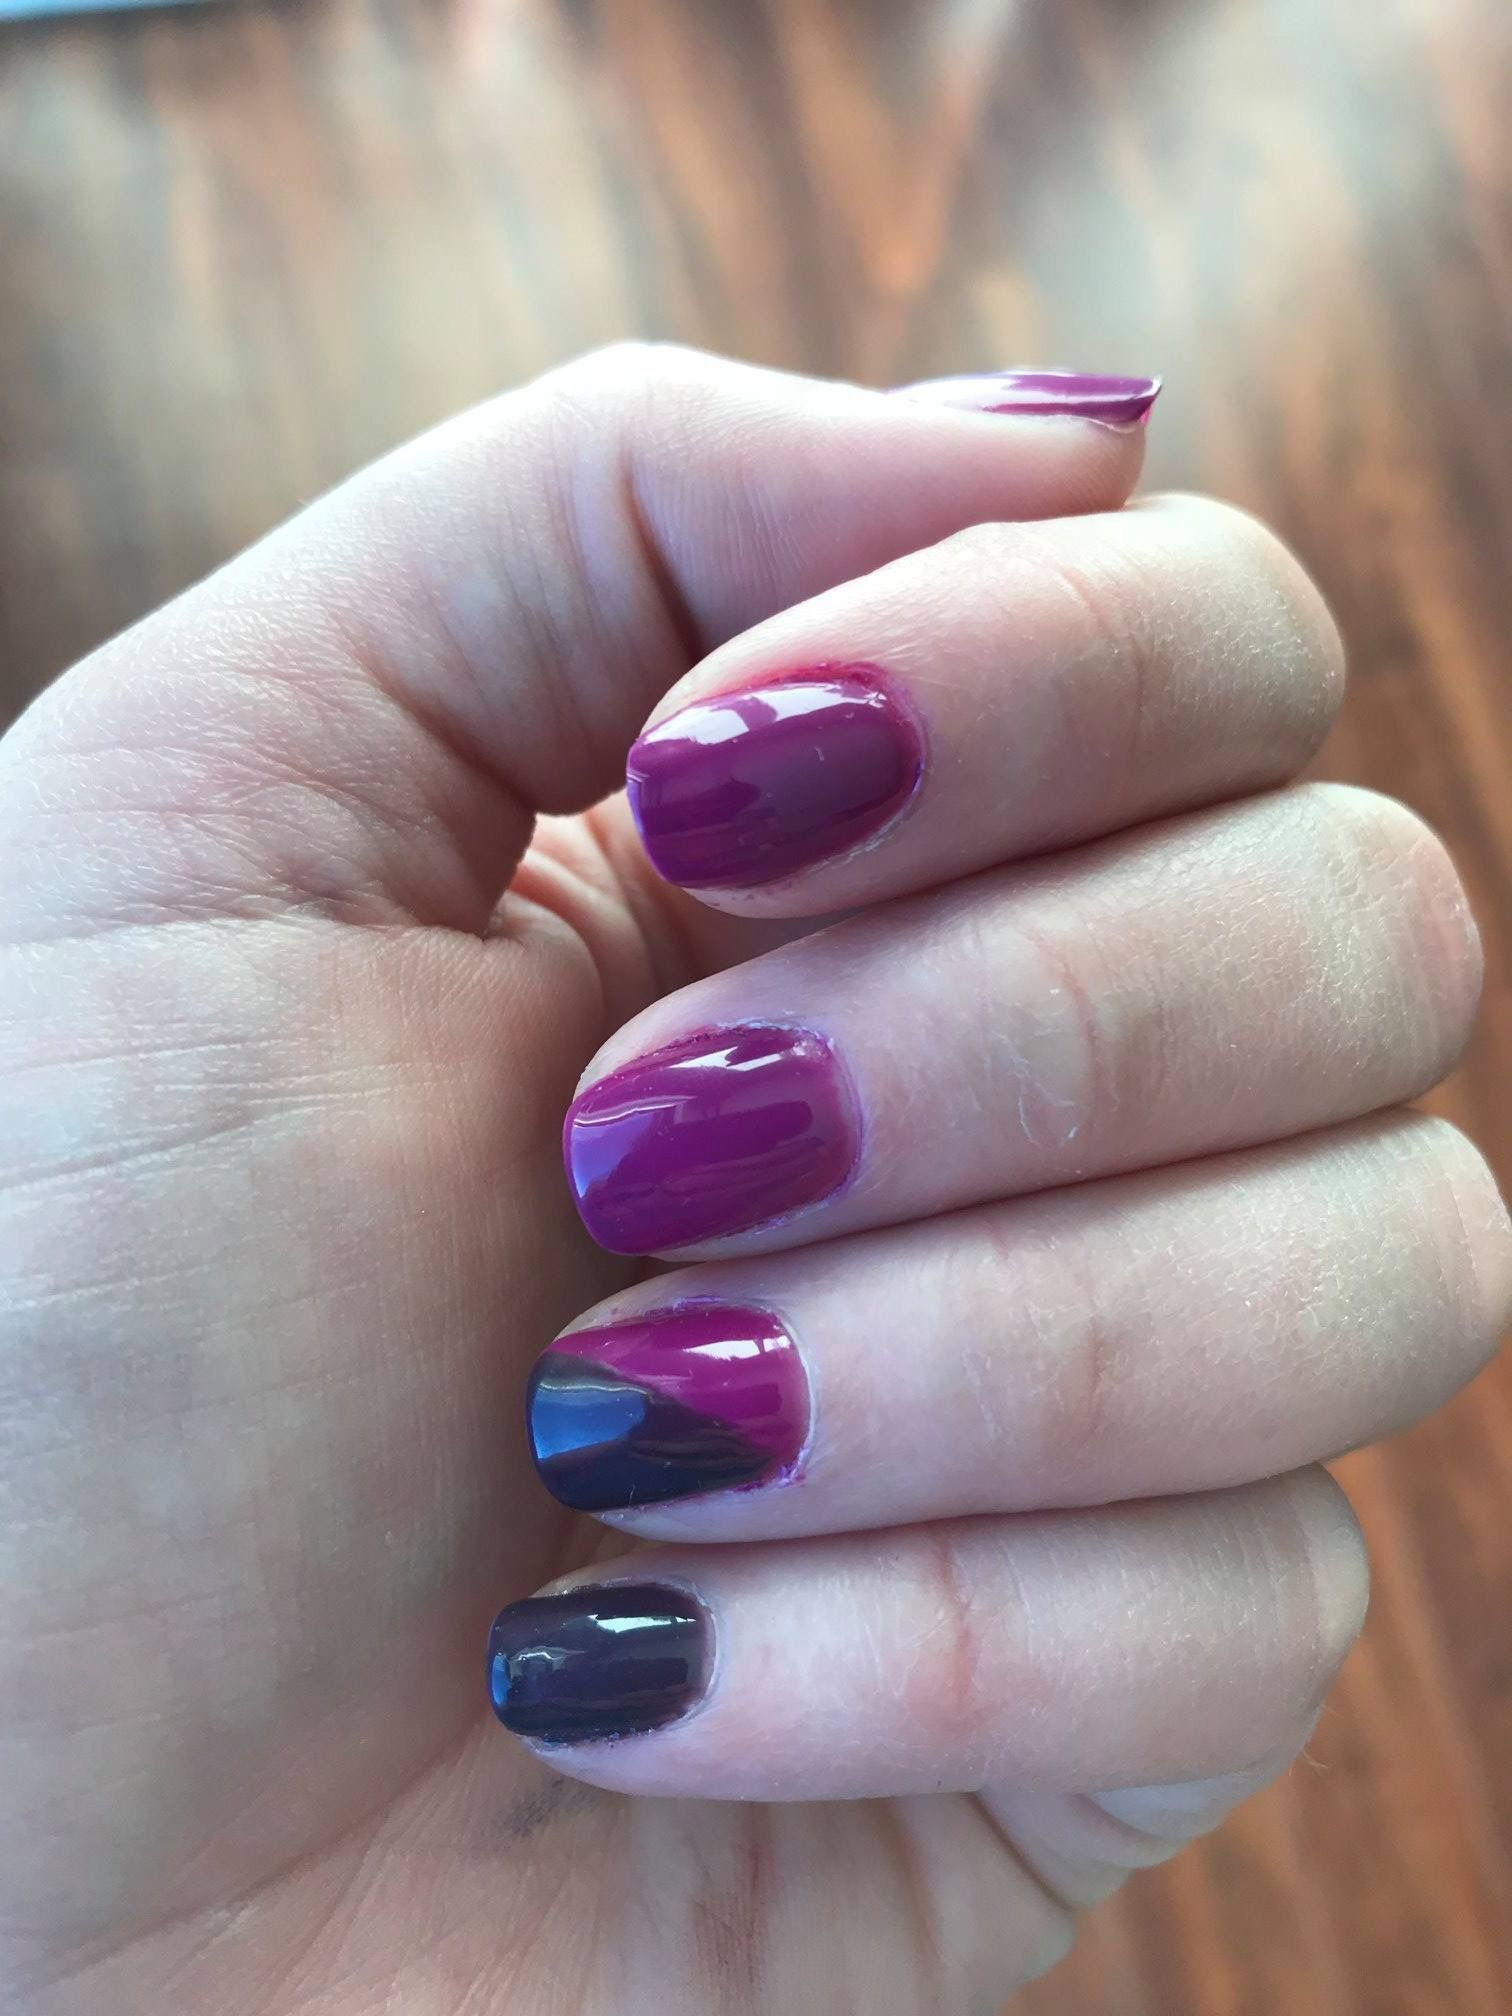 The newest color Perfectly Plum. GelMoment is hiring! Join the ...